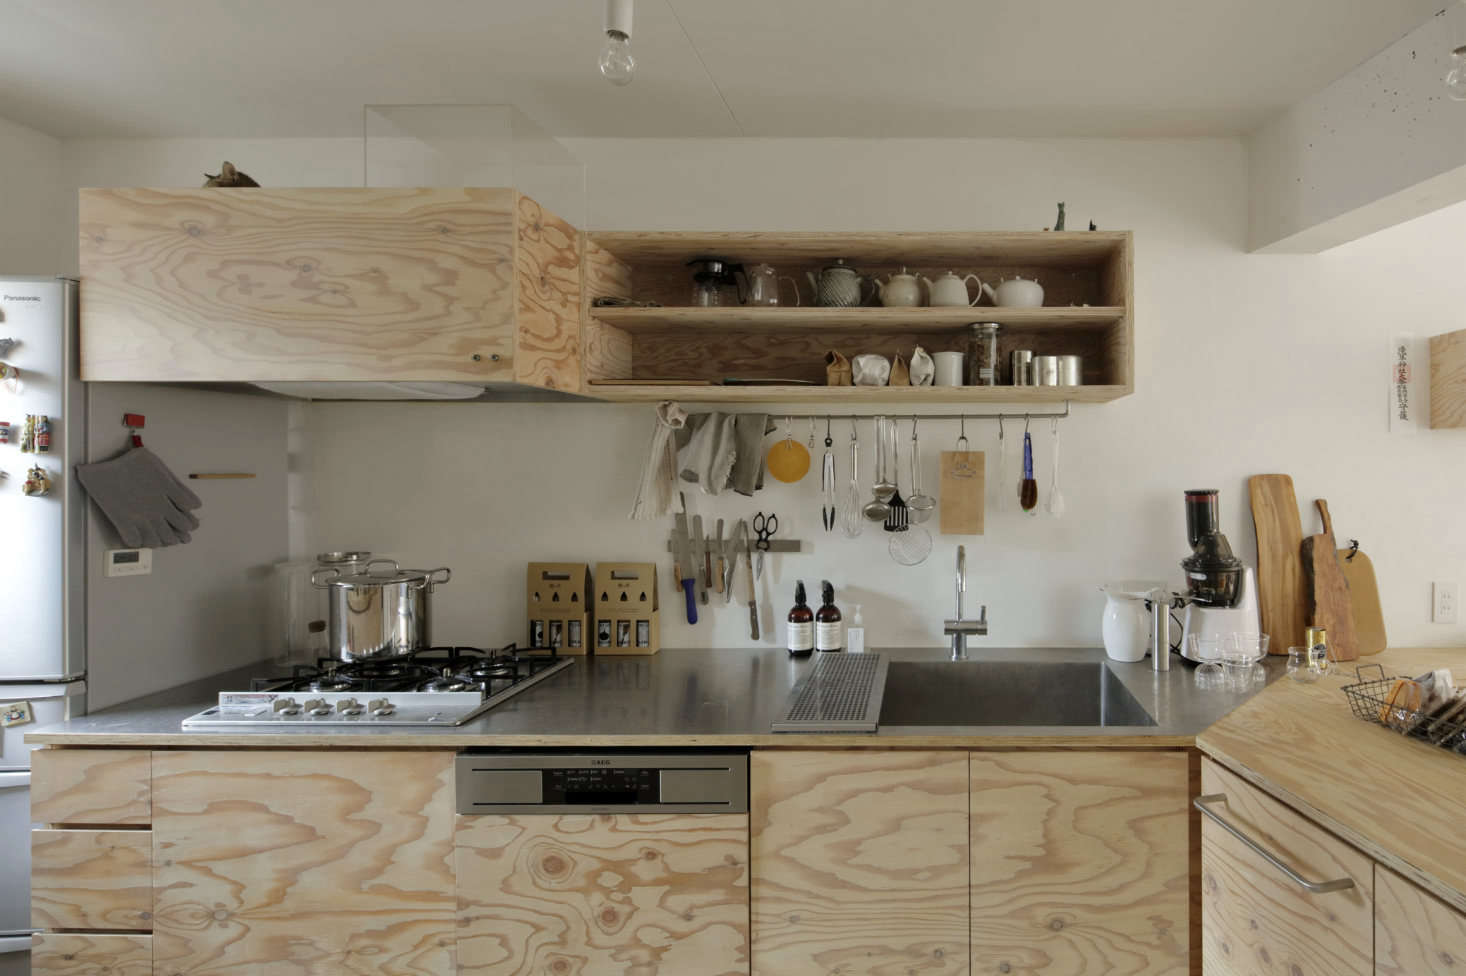 The cabinets are faced with lauan plywood finished with a translucent white Osmo Wood Wax, and the counters are a combination of thin stainless steel and plywood.